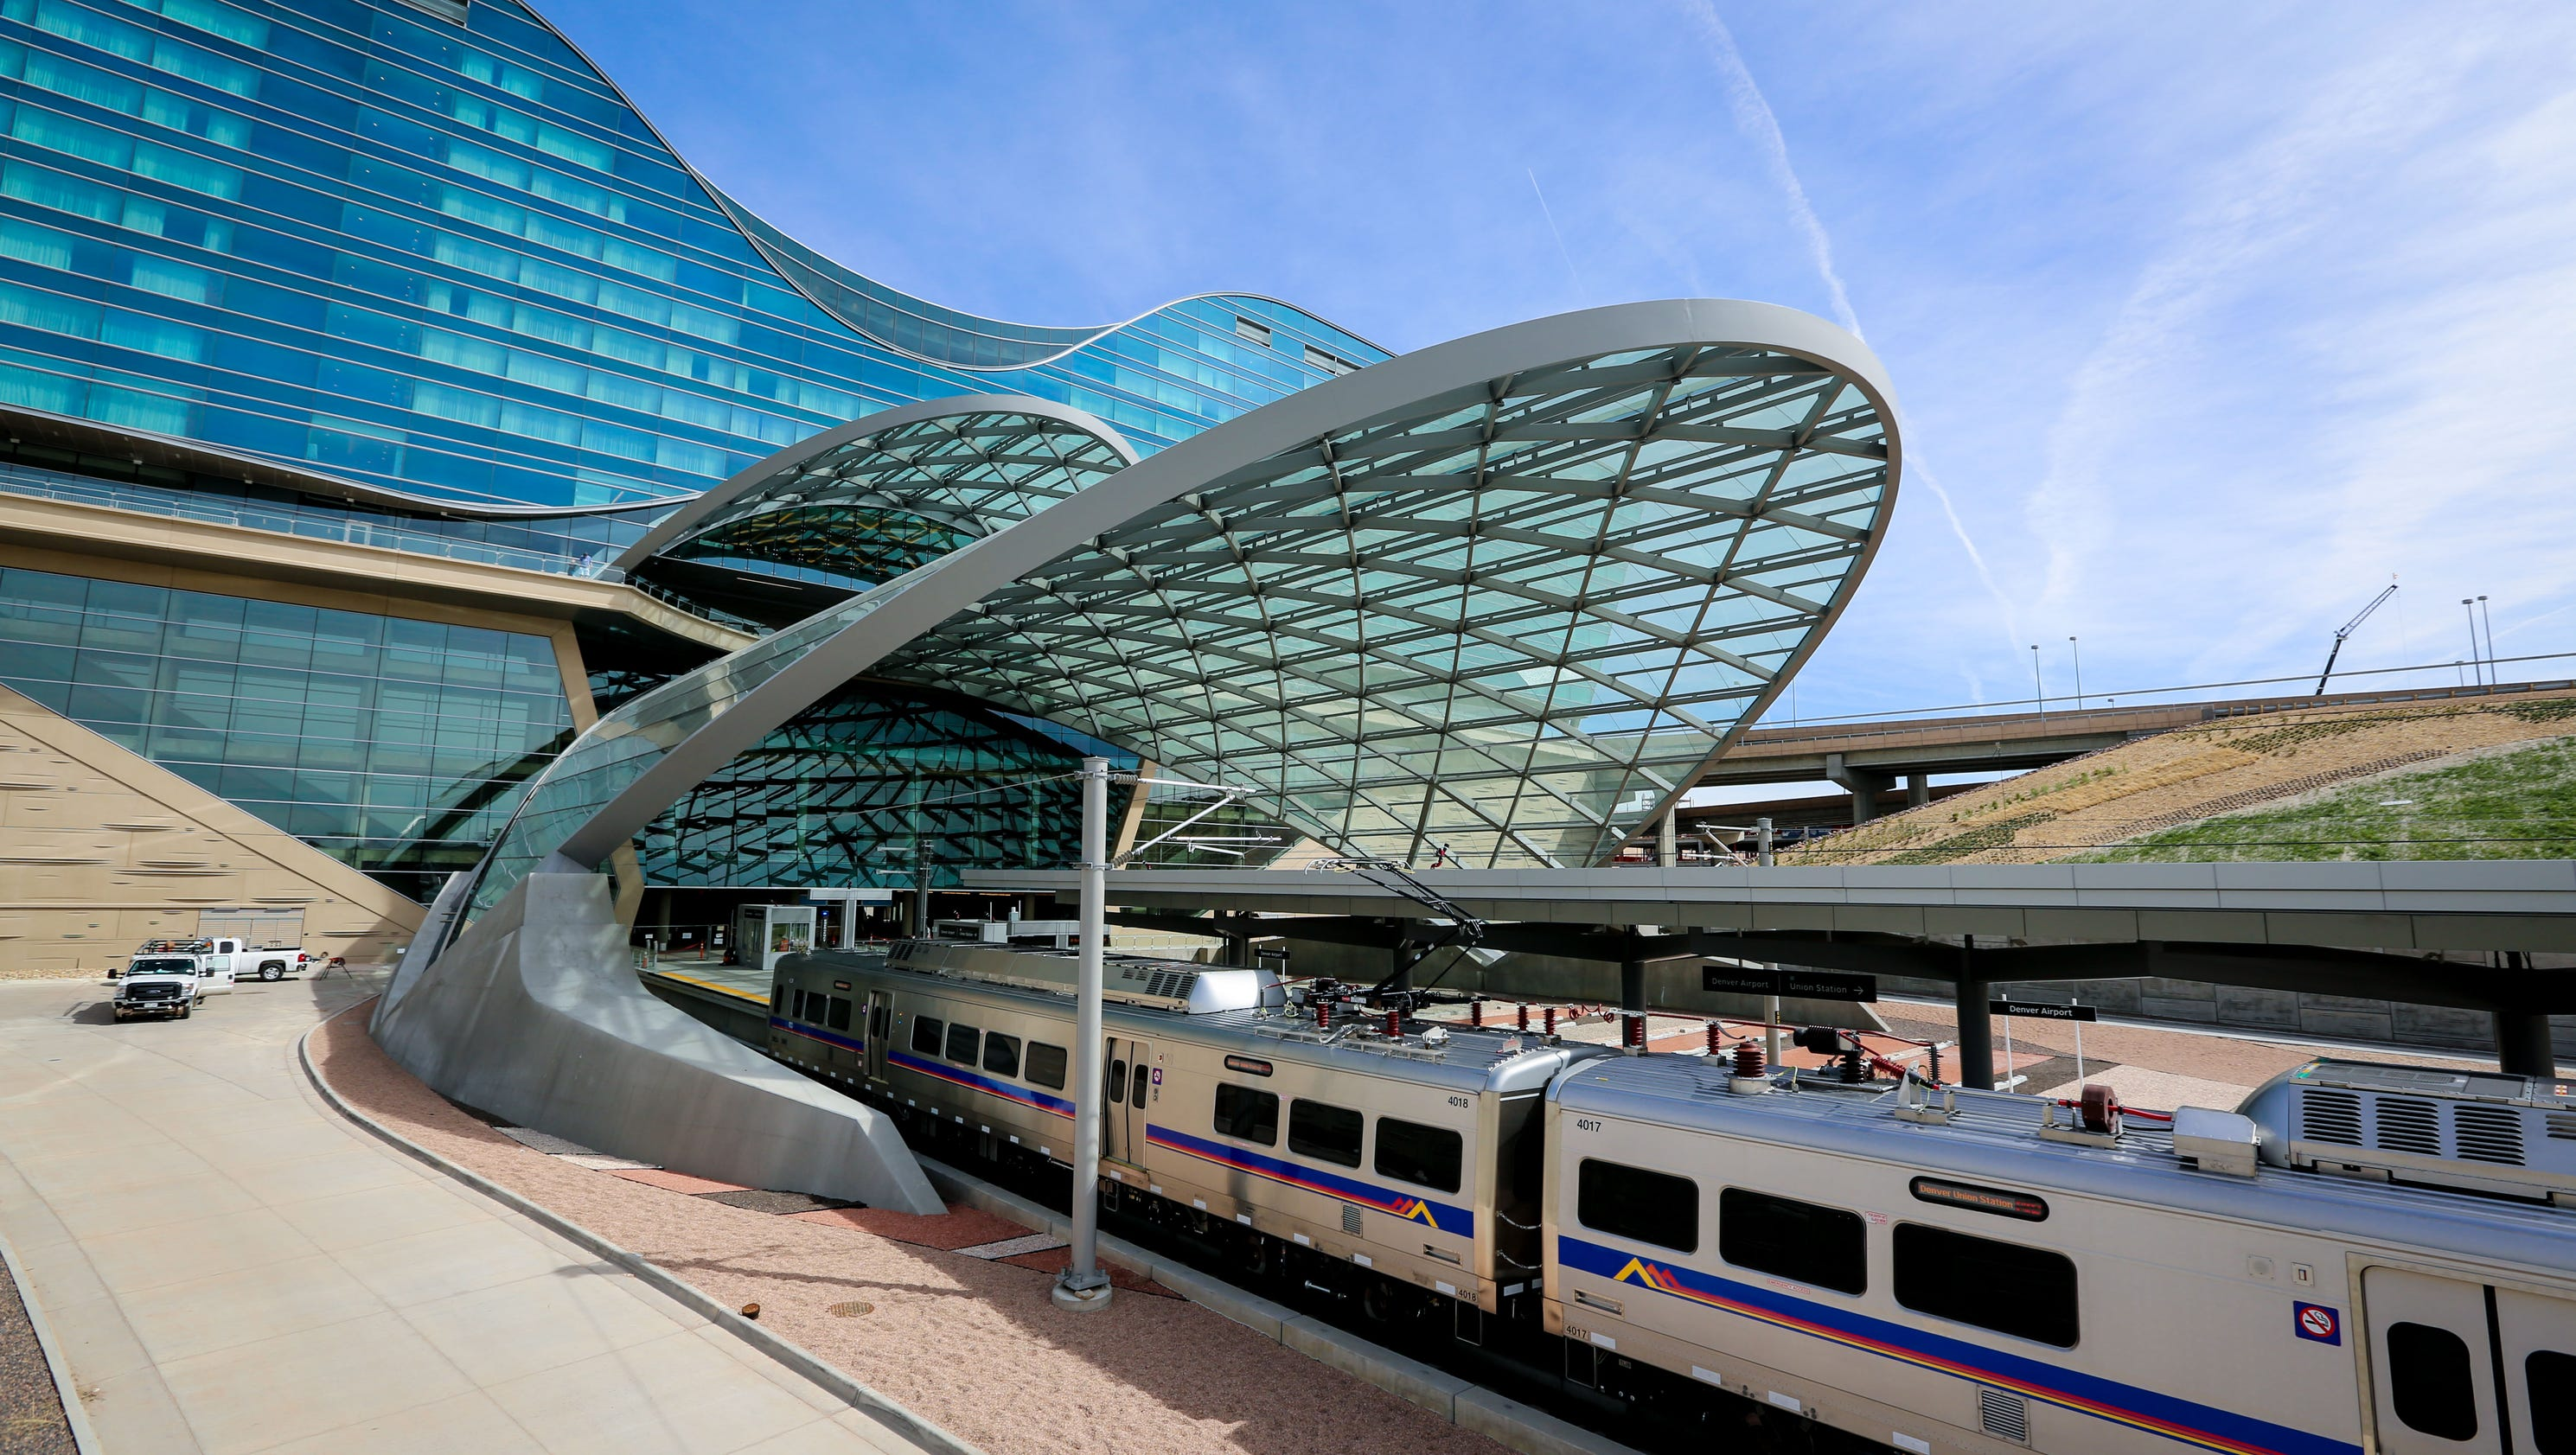 Denver's new airport train starts service